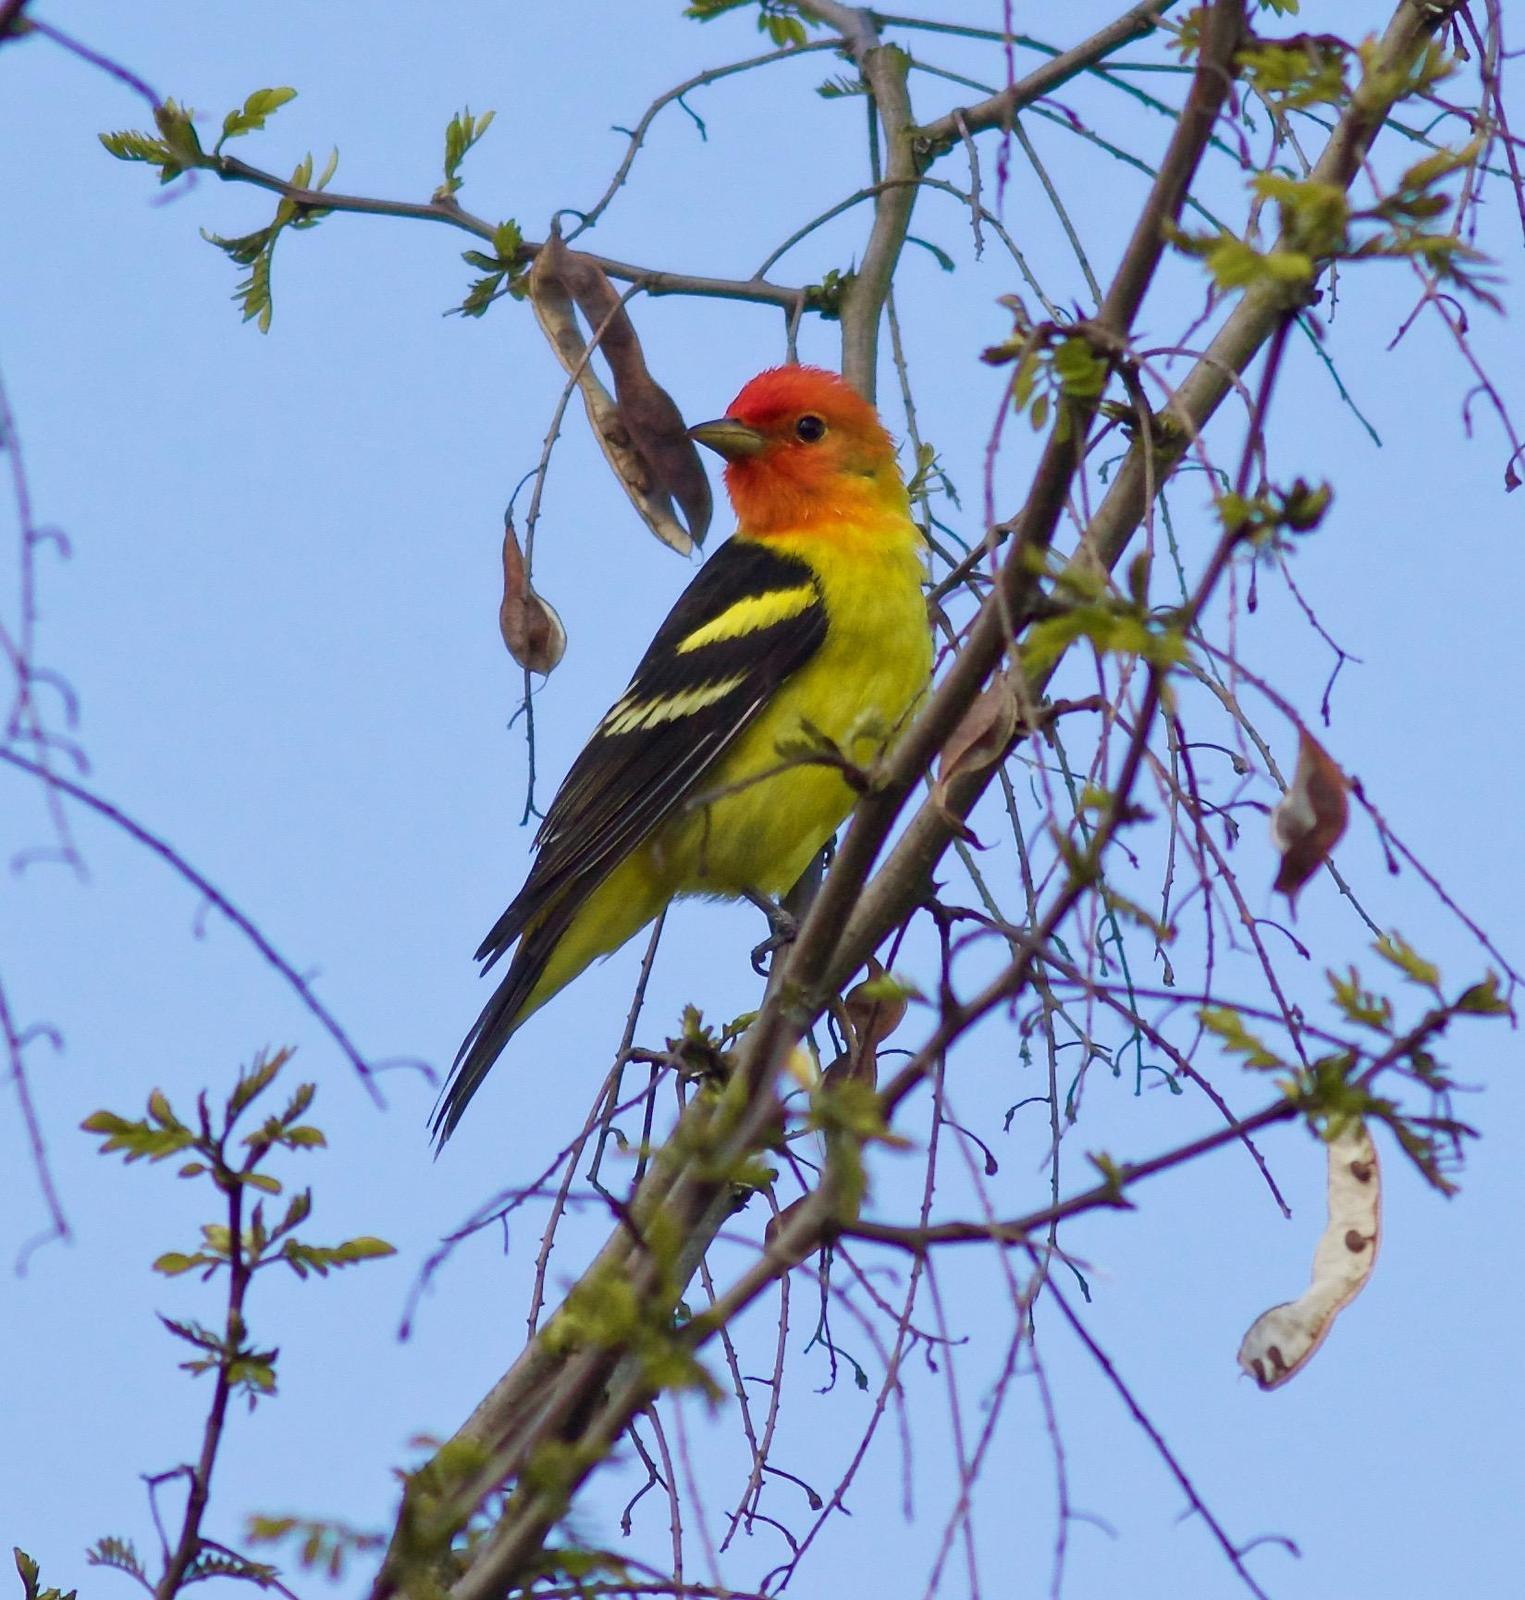 Western Tanager Photo by Kathryn Keith